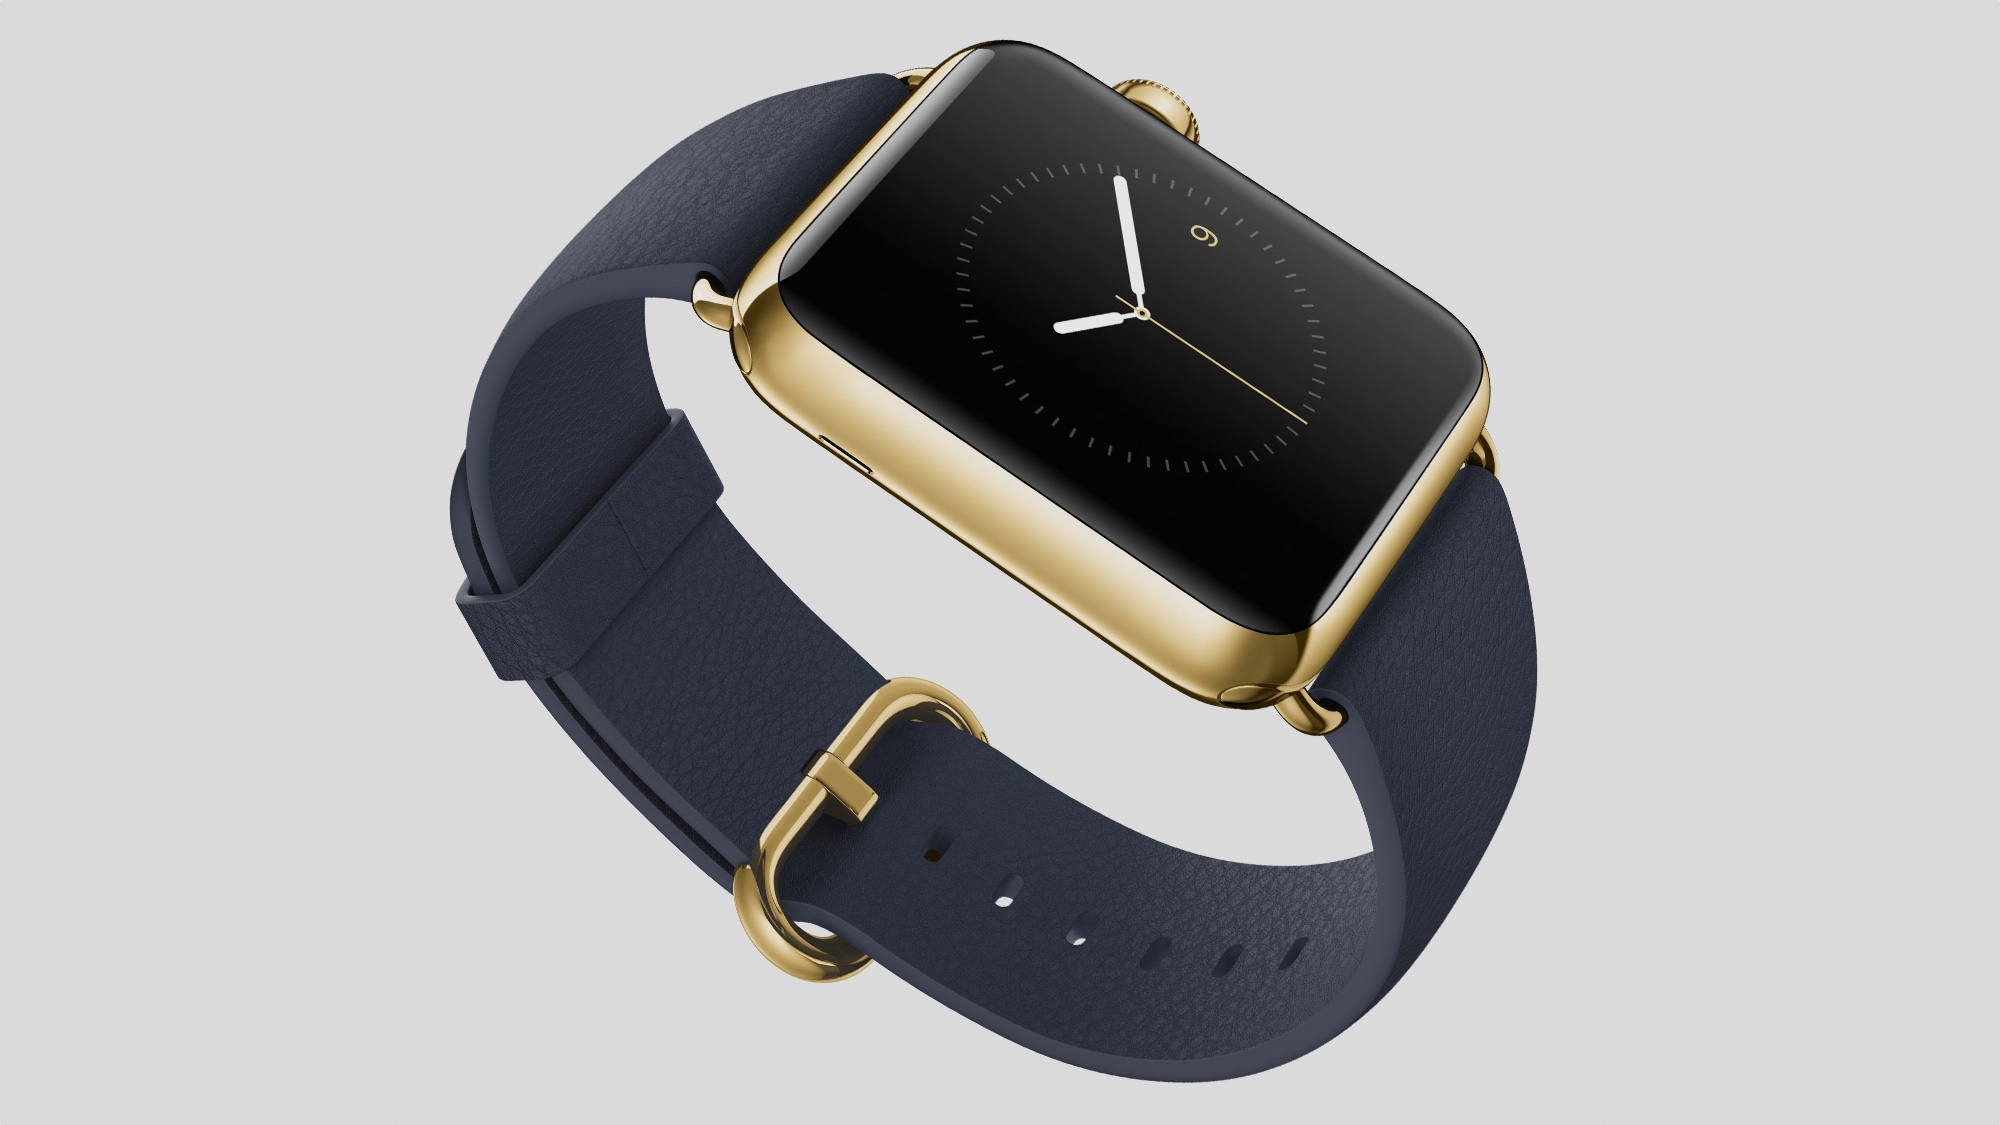 Gold-plated Apple Watch Sport rumoured